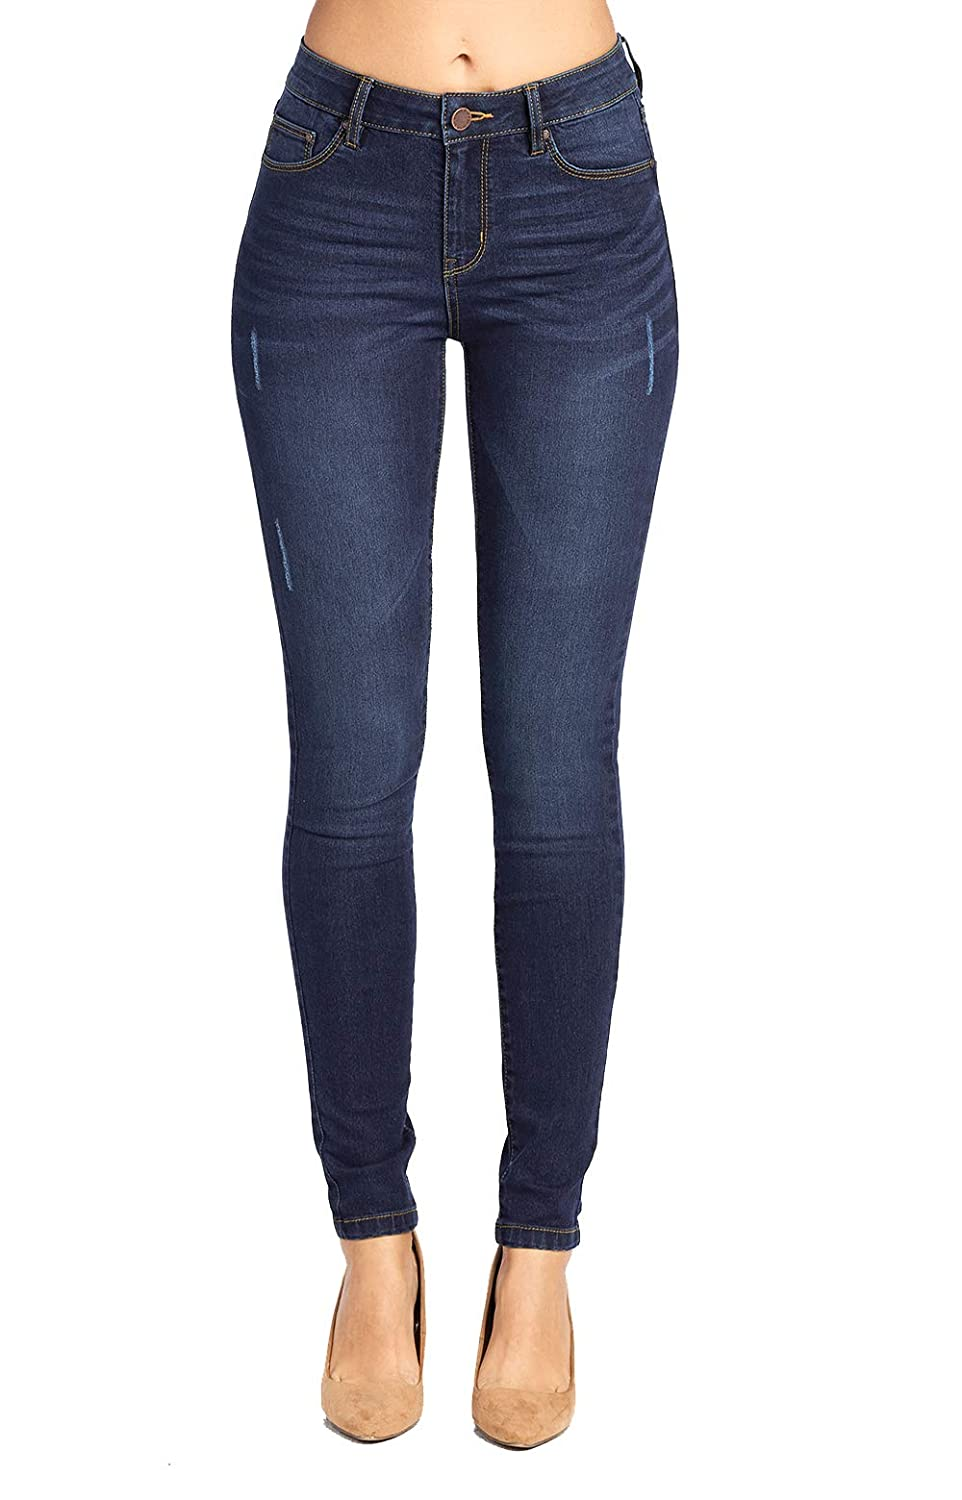 Jp1064_dark Wash bluee Age Women's ButtLifting Skinny Jeans